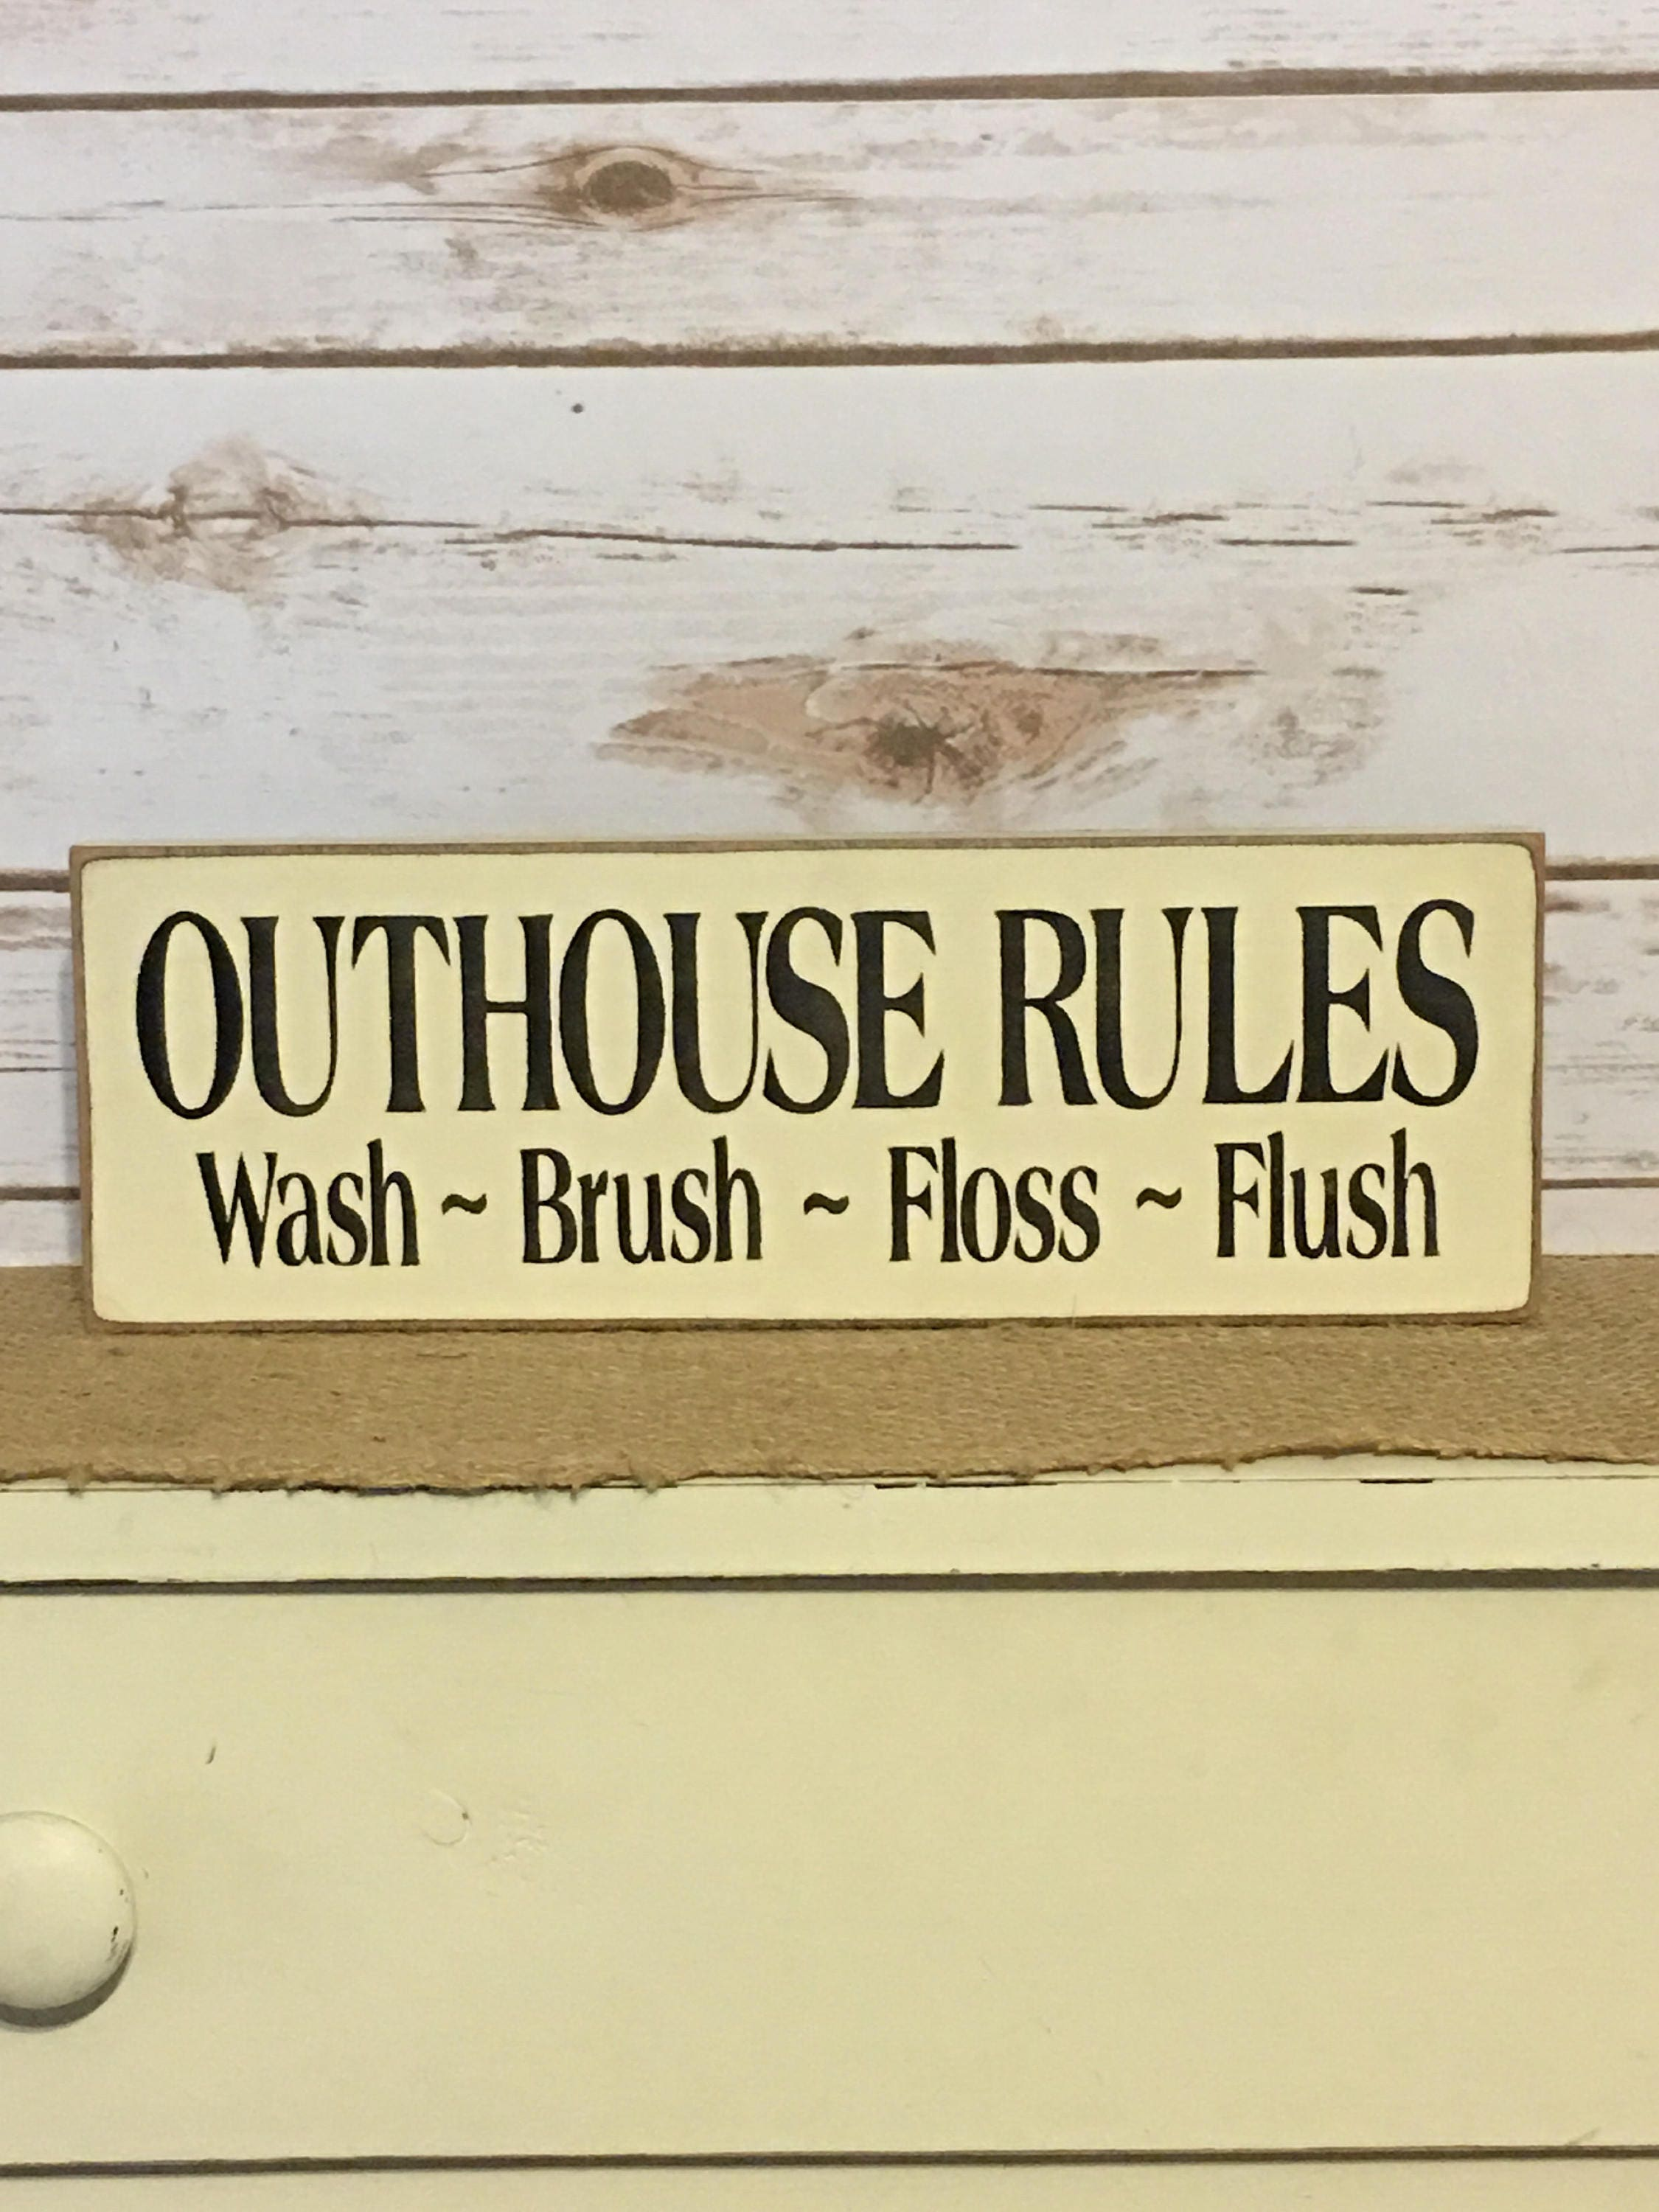 Outhouse Rules Wash Brush Floss Flush Primitive Sign